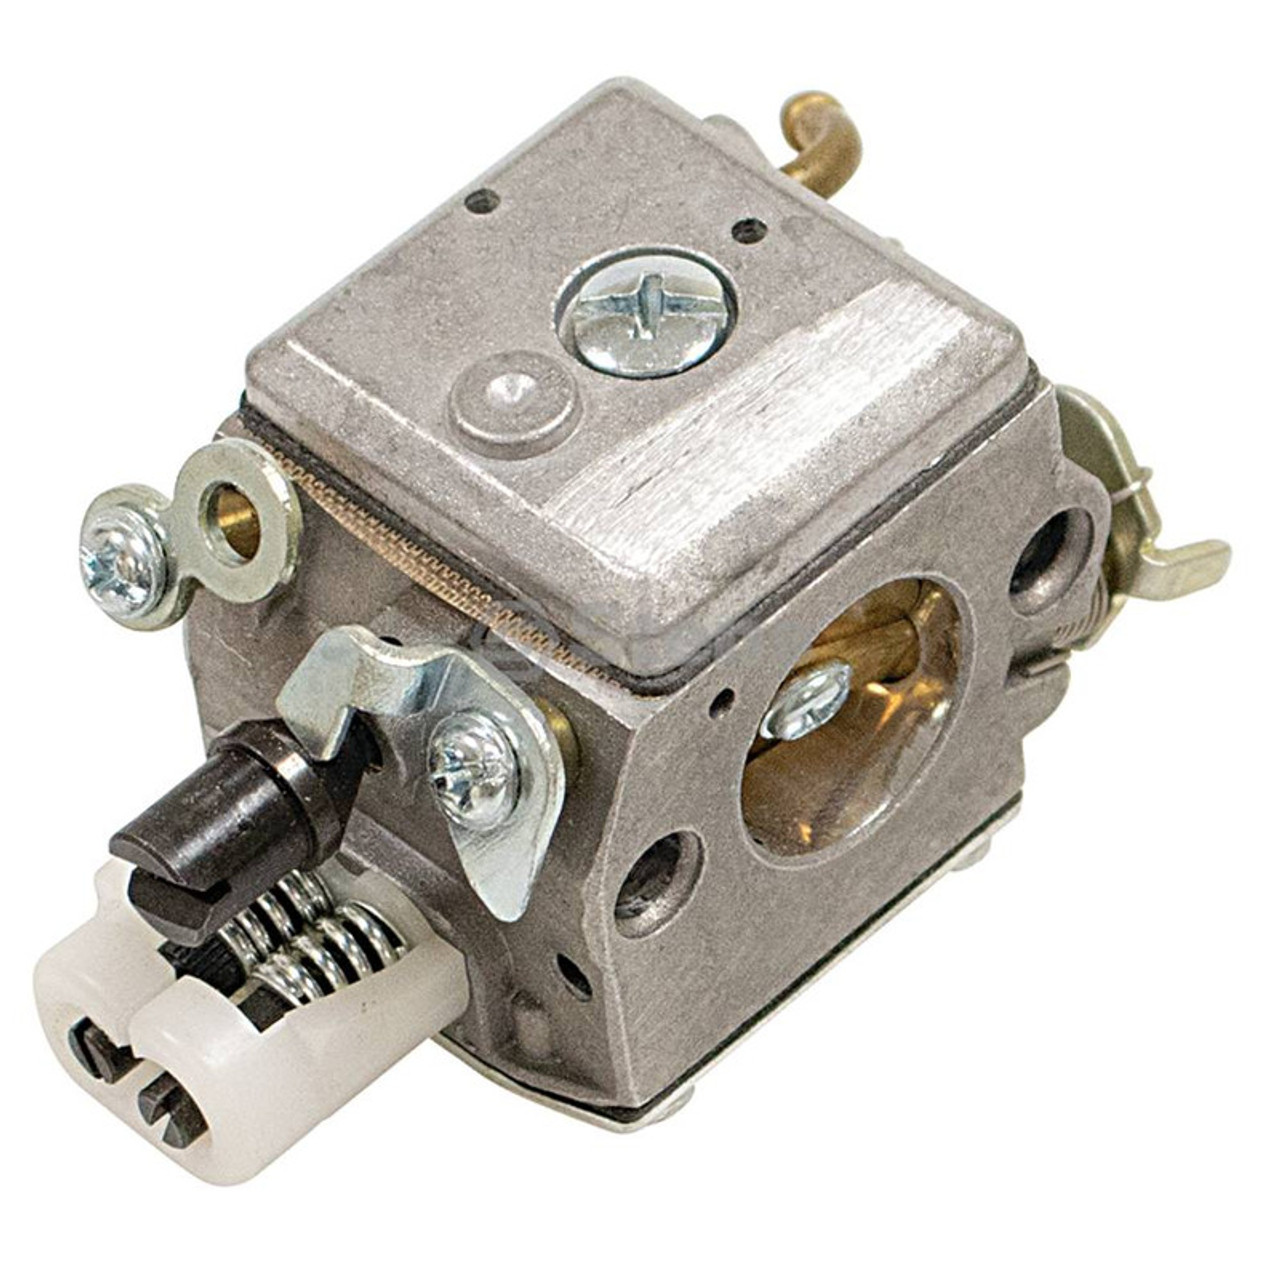 Carburetor Fits Husqvarna 357 Xp 359 Jonsered 2156, 2159 replaces  Zama EL-42 505203002